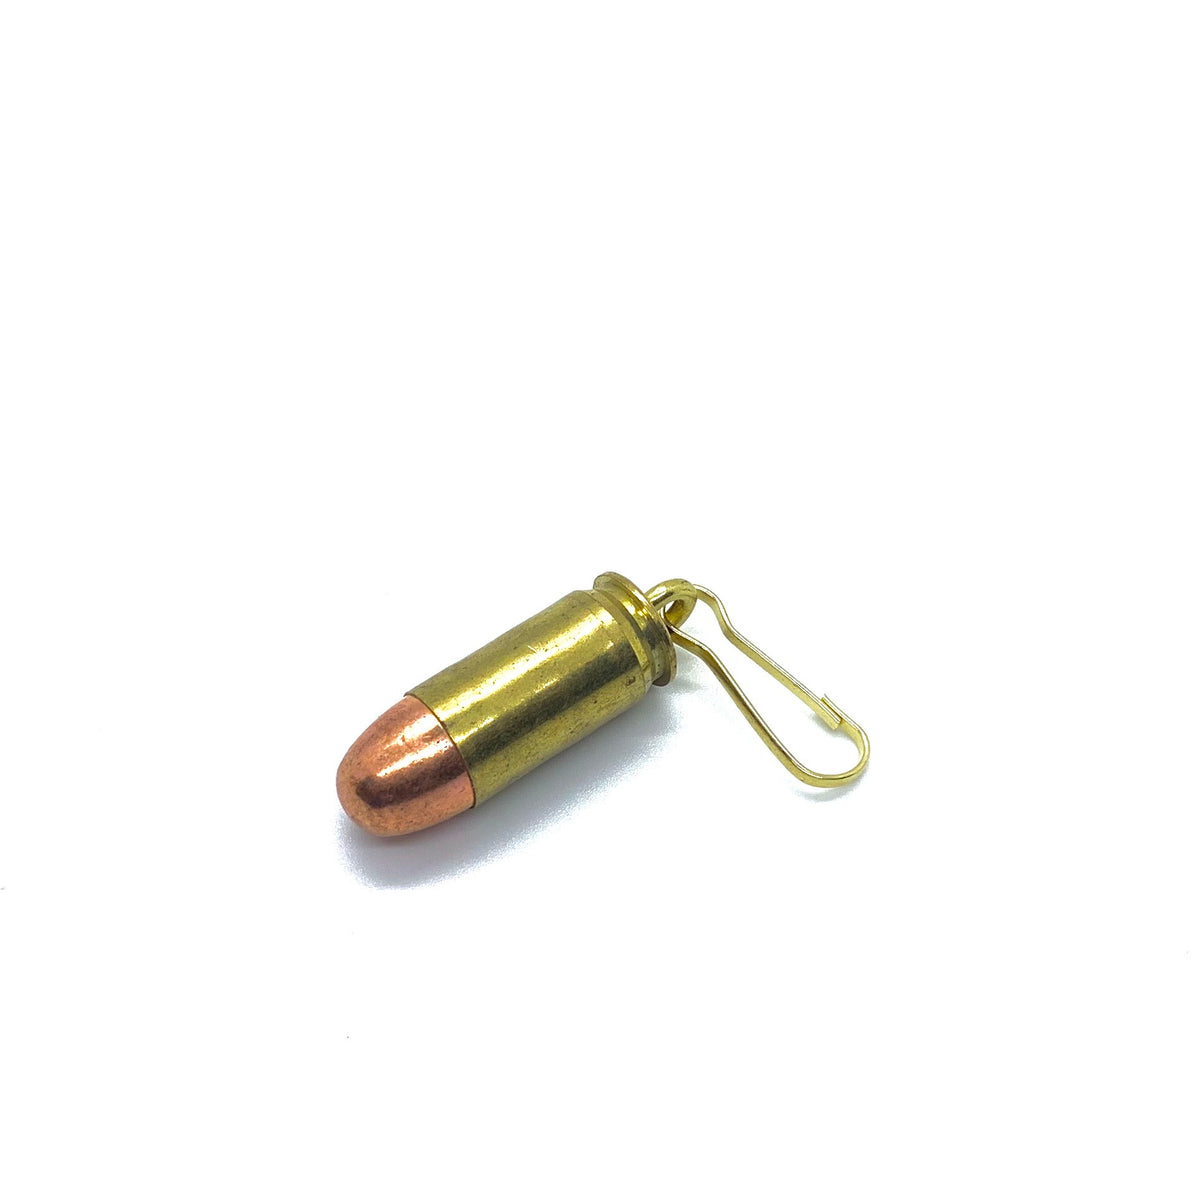 Spent Brass Bullet Zipper Pull